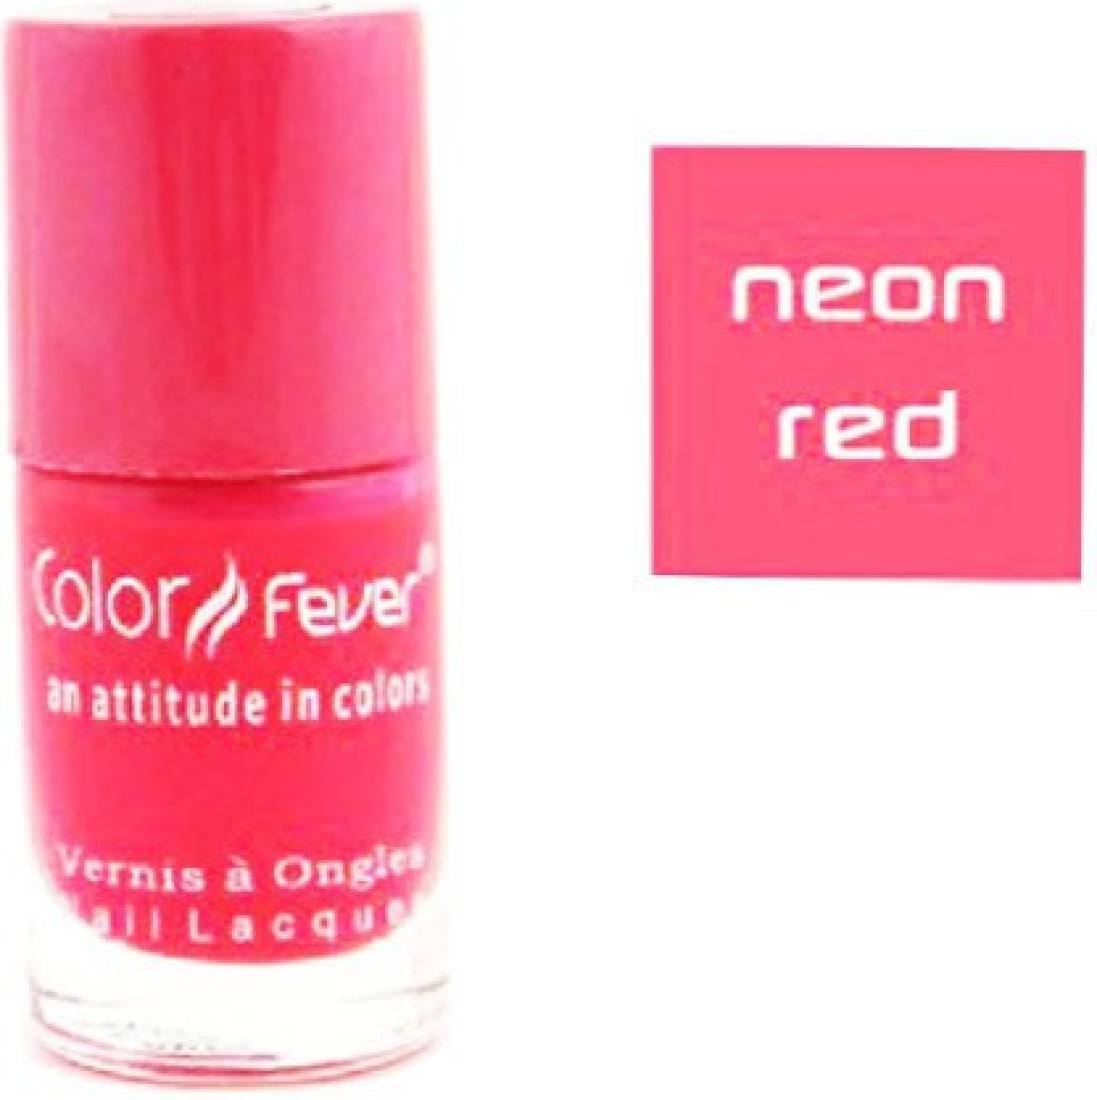 Color Fever Neon Red Nail